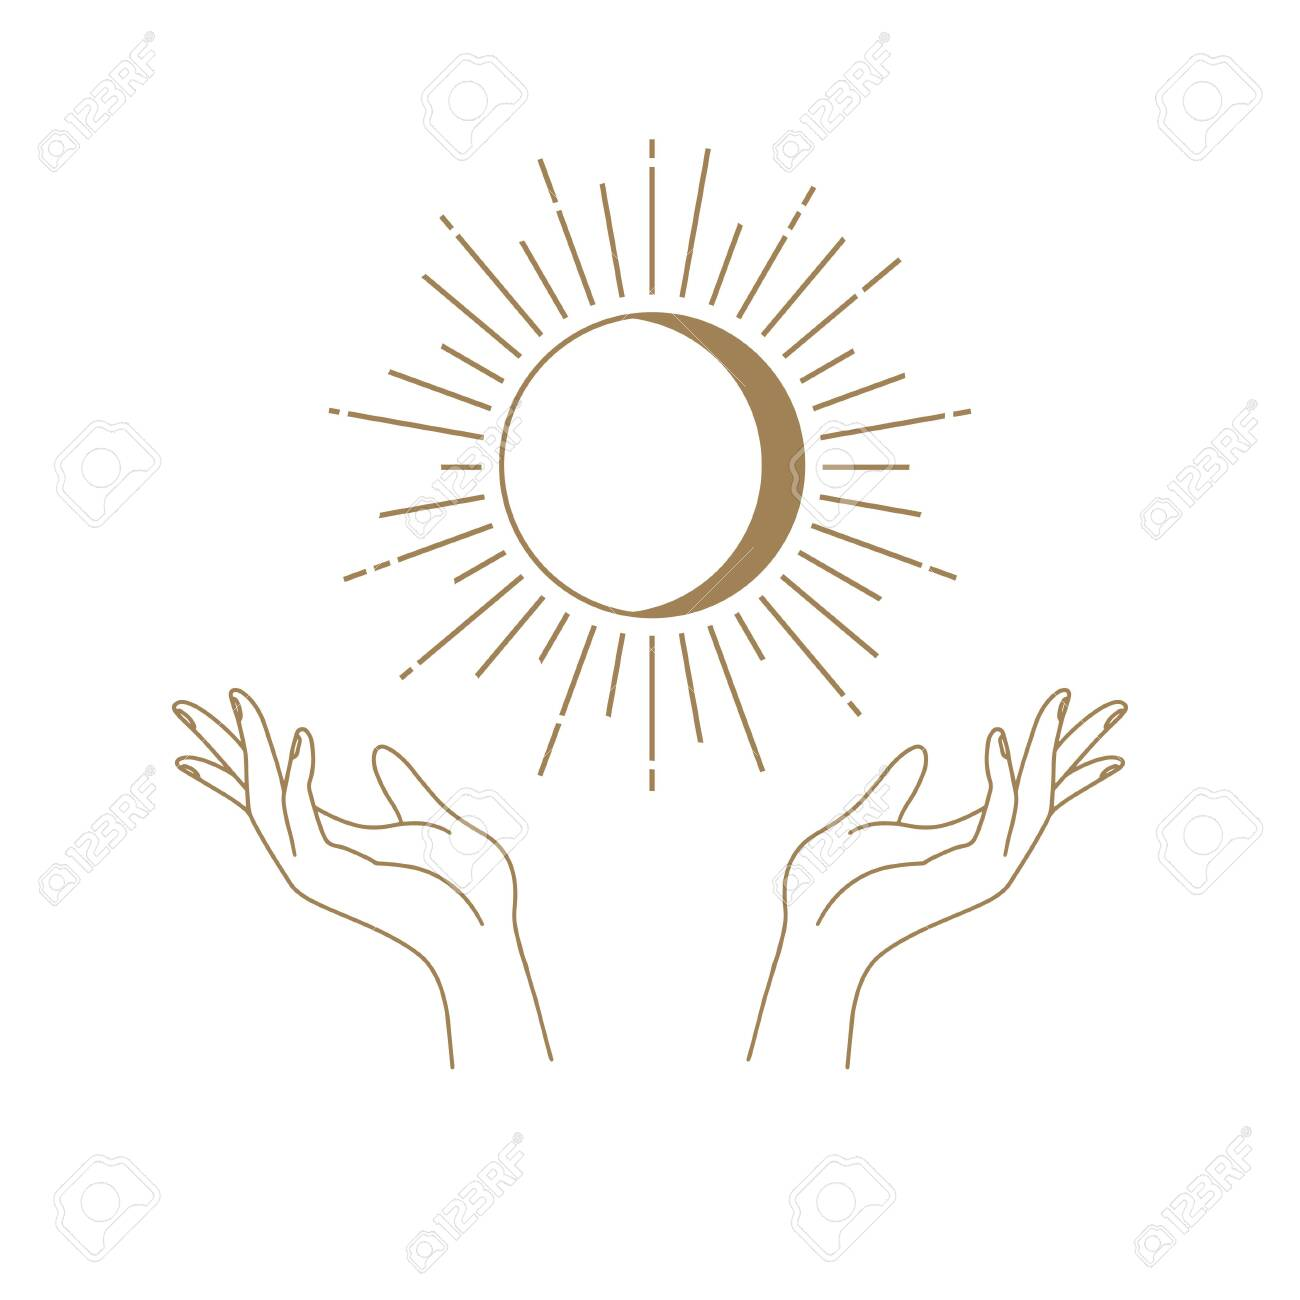 Vector abstract logo design template in trendy linear minimal style - hands , moon and sun - abstract symbol for cosmetics and packaging, jewellery, hand crafted or beauty products - 139090603